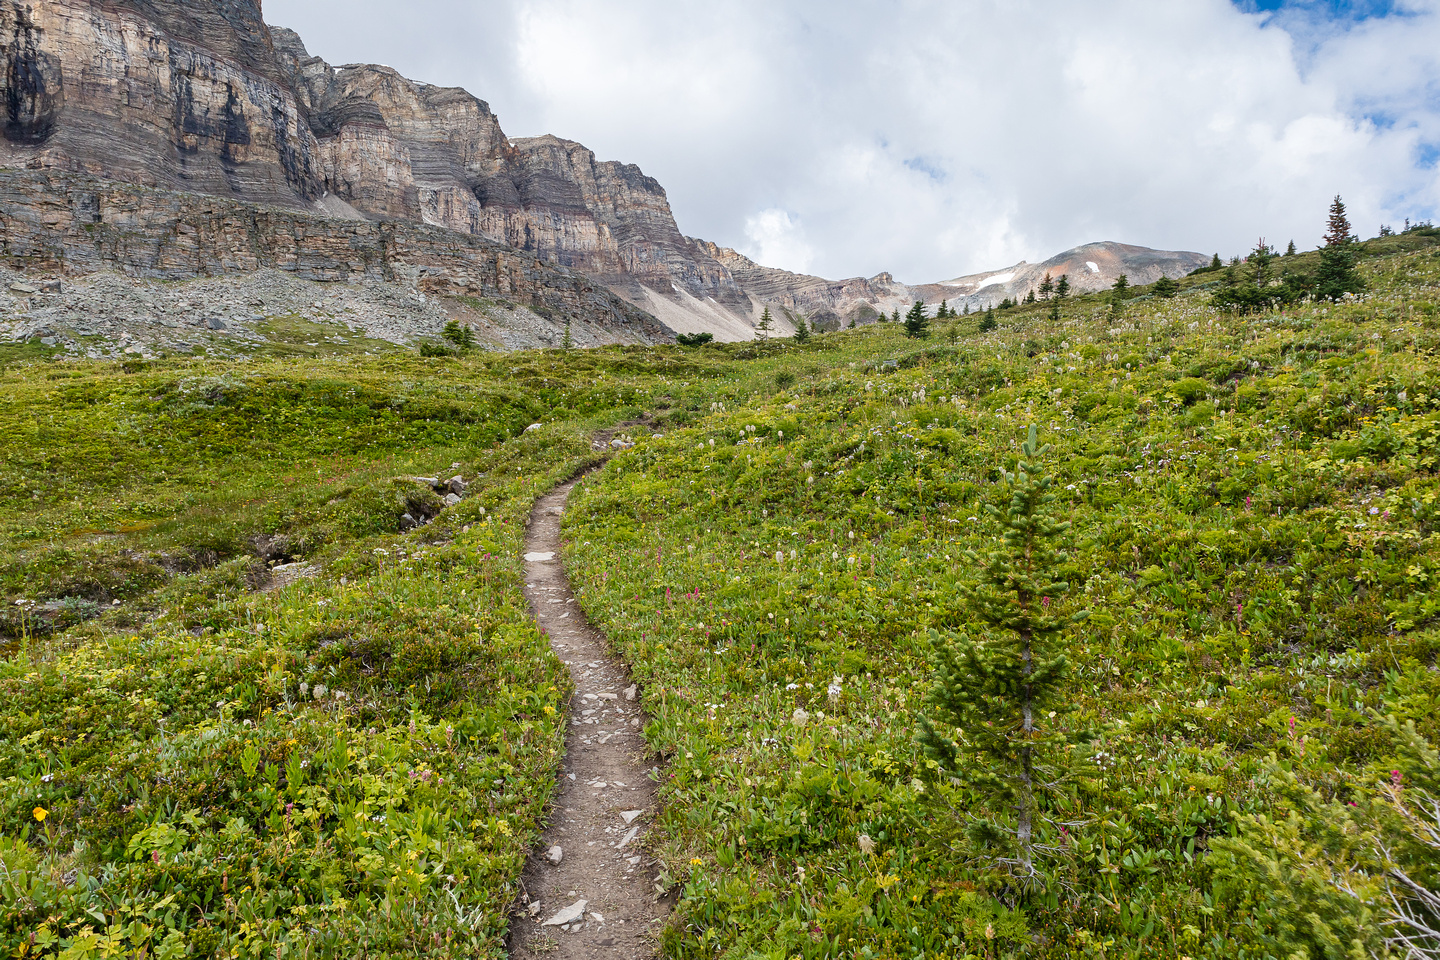 Ascending green alpine meadows to North Molar Pass.